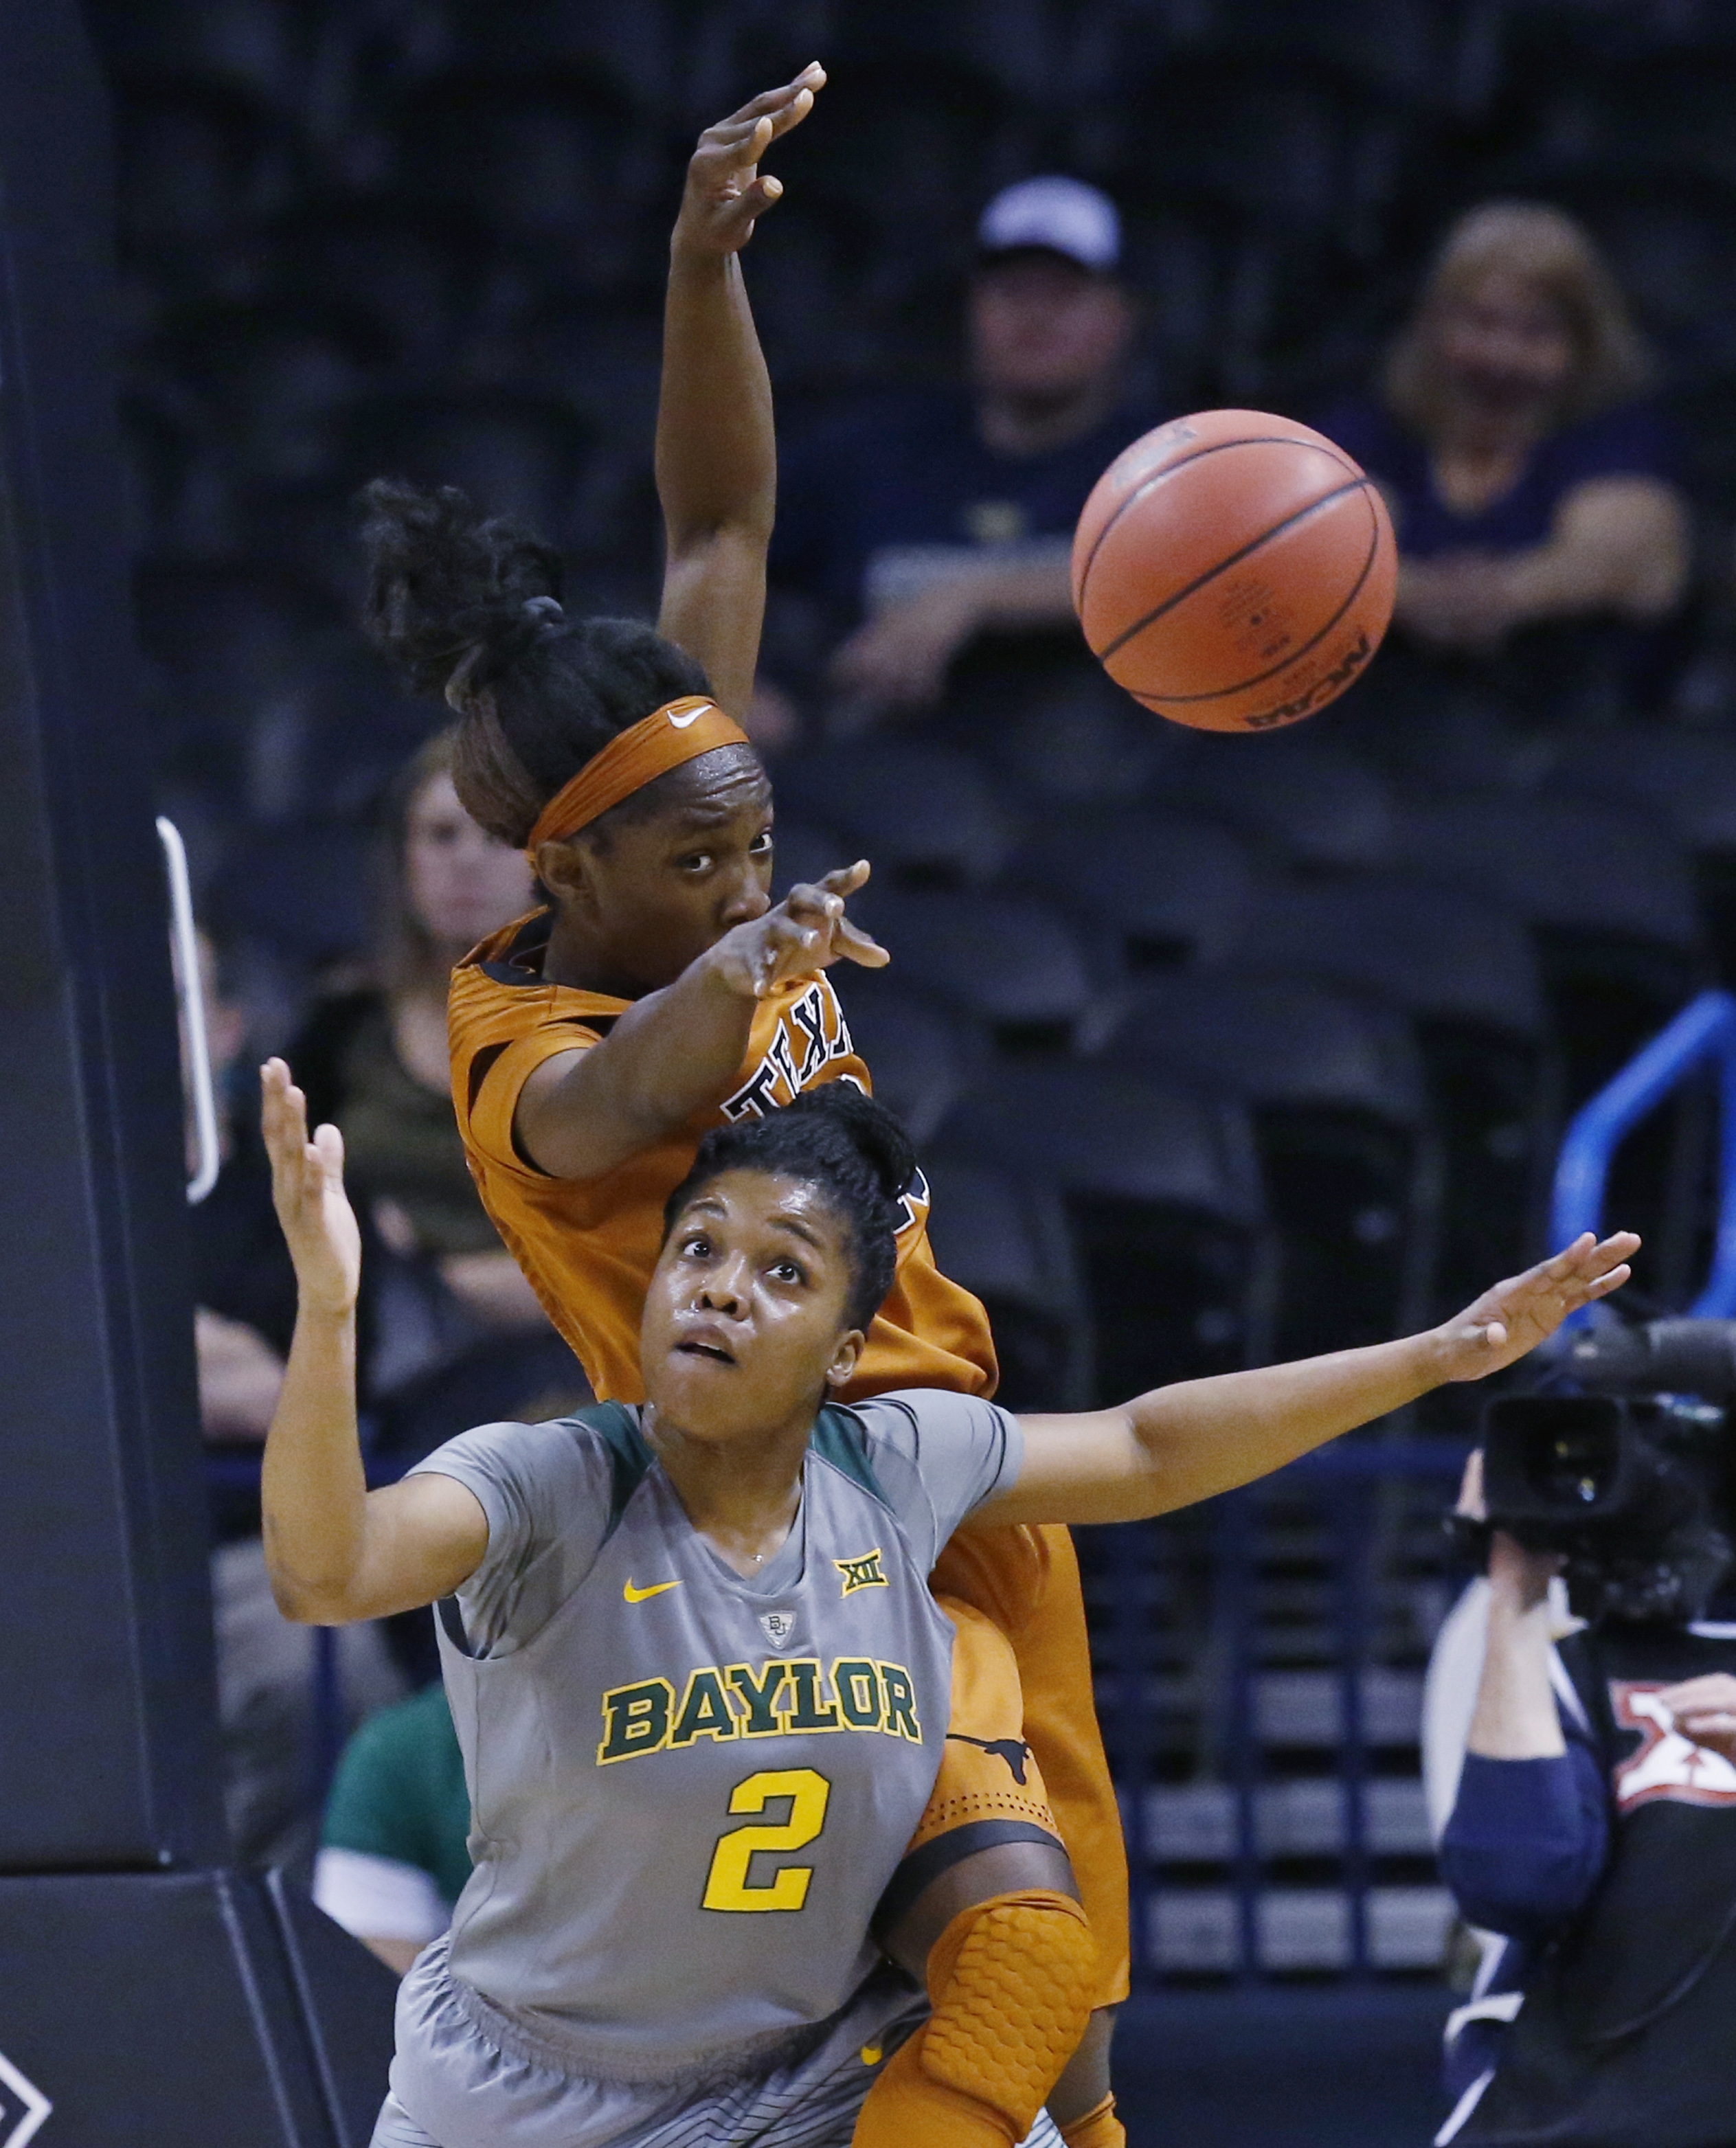 Texas guard Lashann Higgs, rear, and Baylor guard Niya Johnson (2) reach for a loose ball in the first quarter of an NCAA college basketball championship game in the Big 12 women's tournament in Oklahoma City, Monday, March 7, 2016. (AP Photo/Sue Ogrocki)